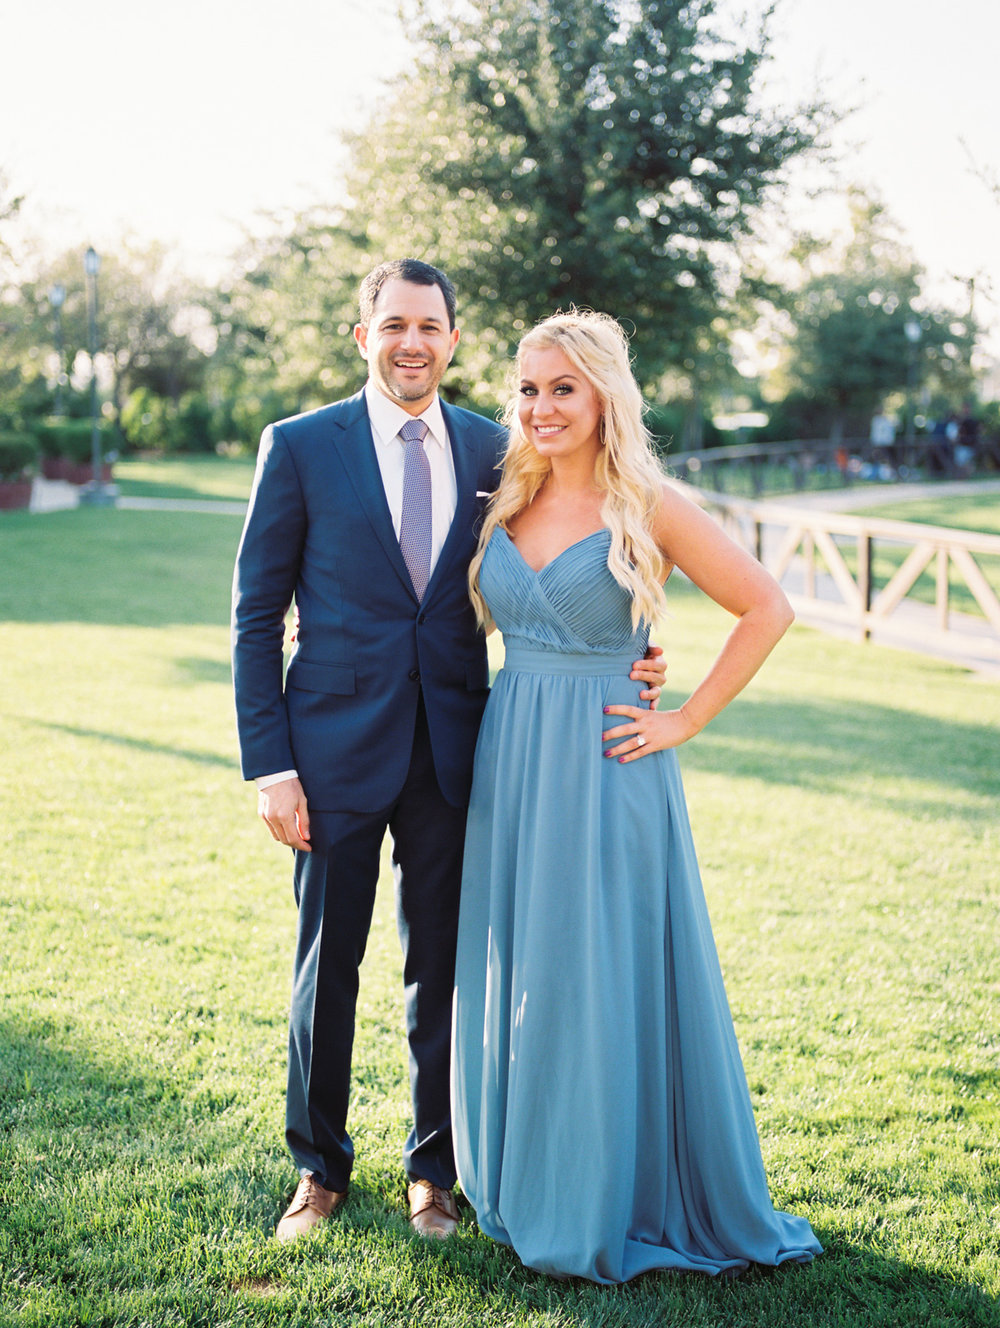 Cute couple at  Harrison & Jocelyne's gorgeous Temecula wedding day at Wiens Family Cellars captured by Temecula wedding photographers Betsy & John